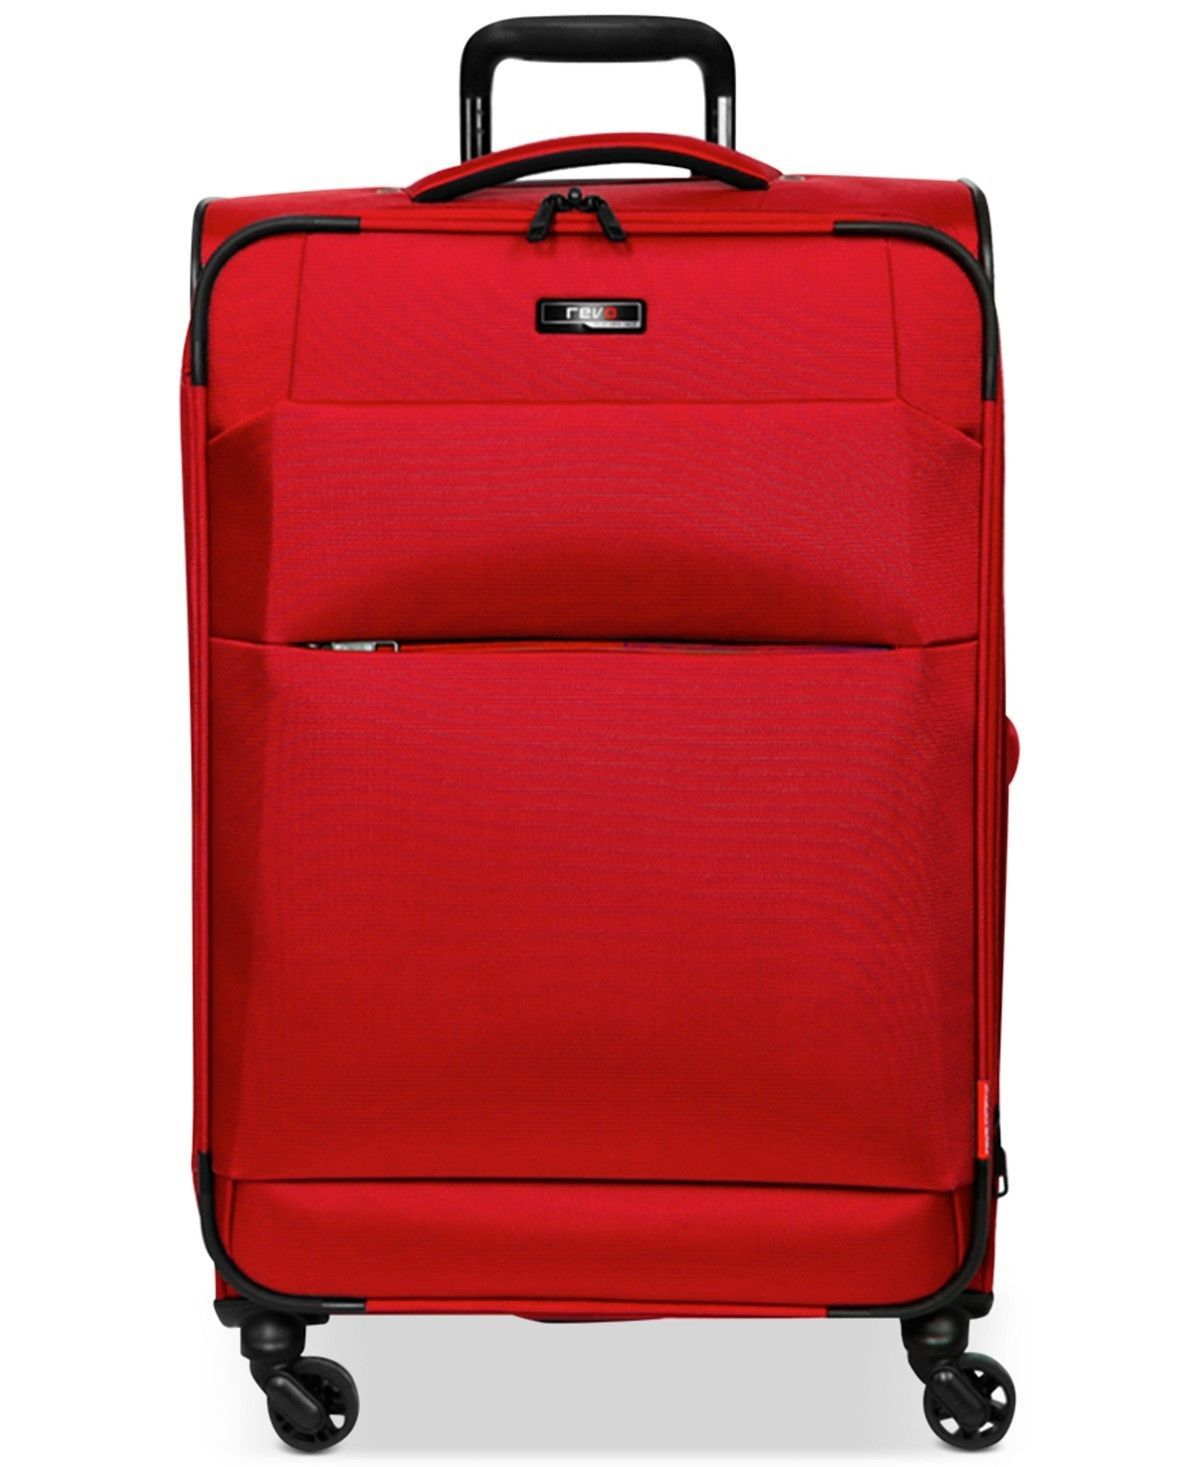 "$340 NEW Revo Airborne 29"" Softside Expandable Spinner Suitcase Luggage Red"